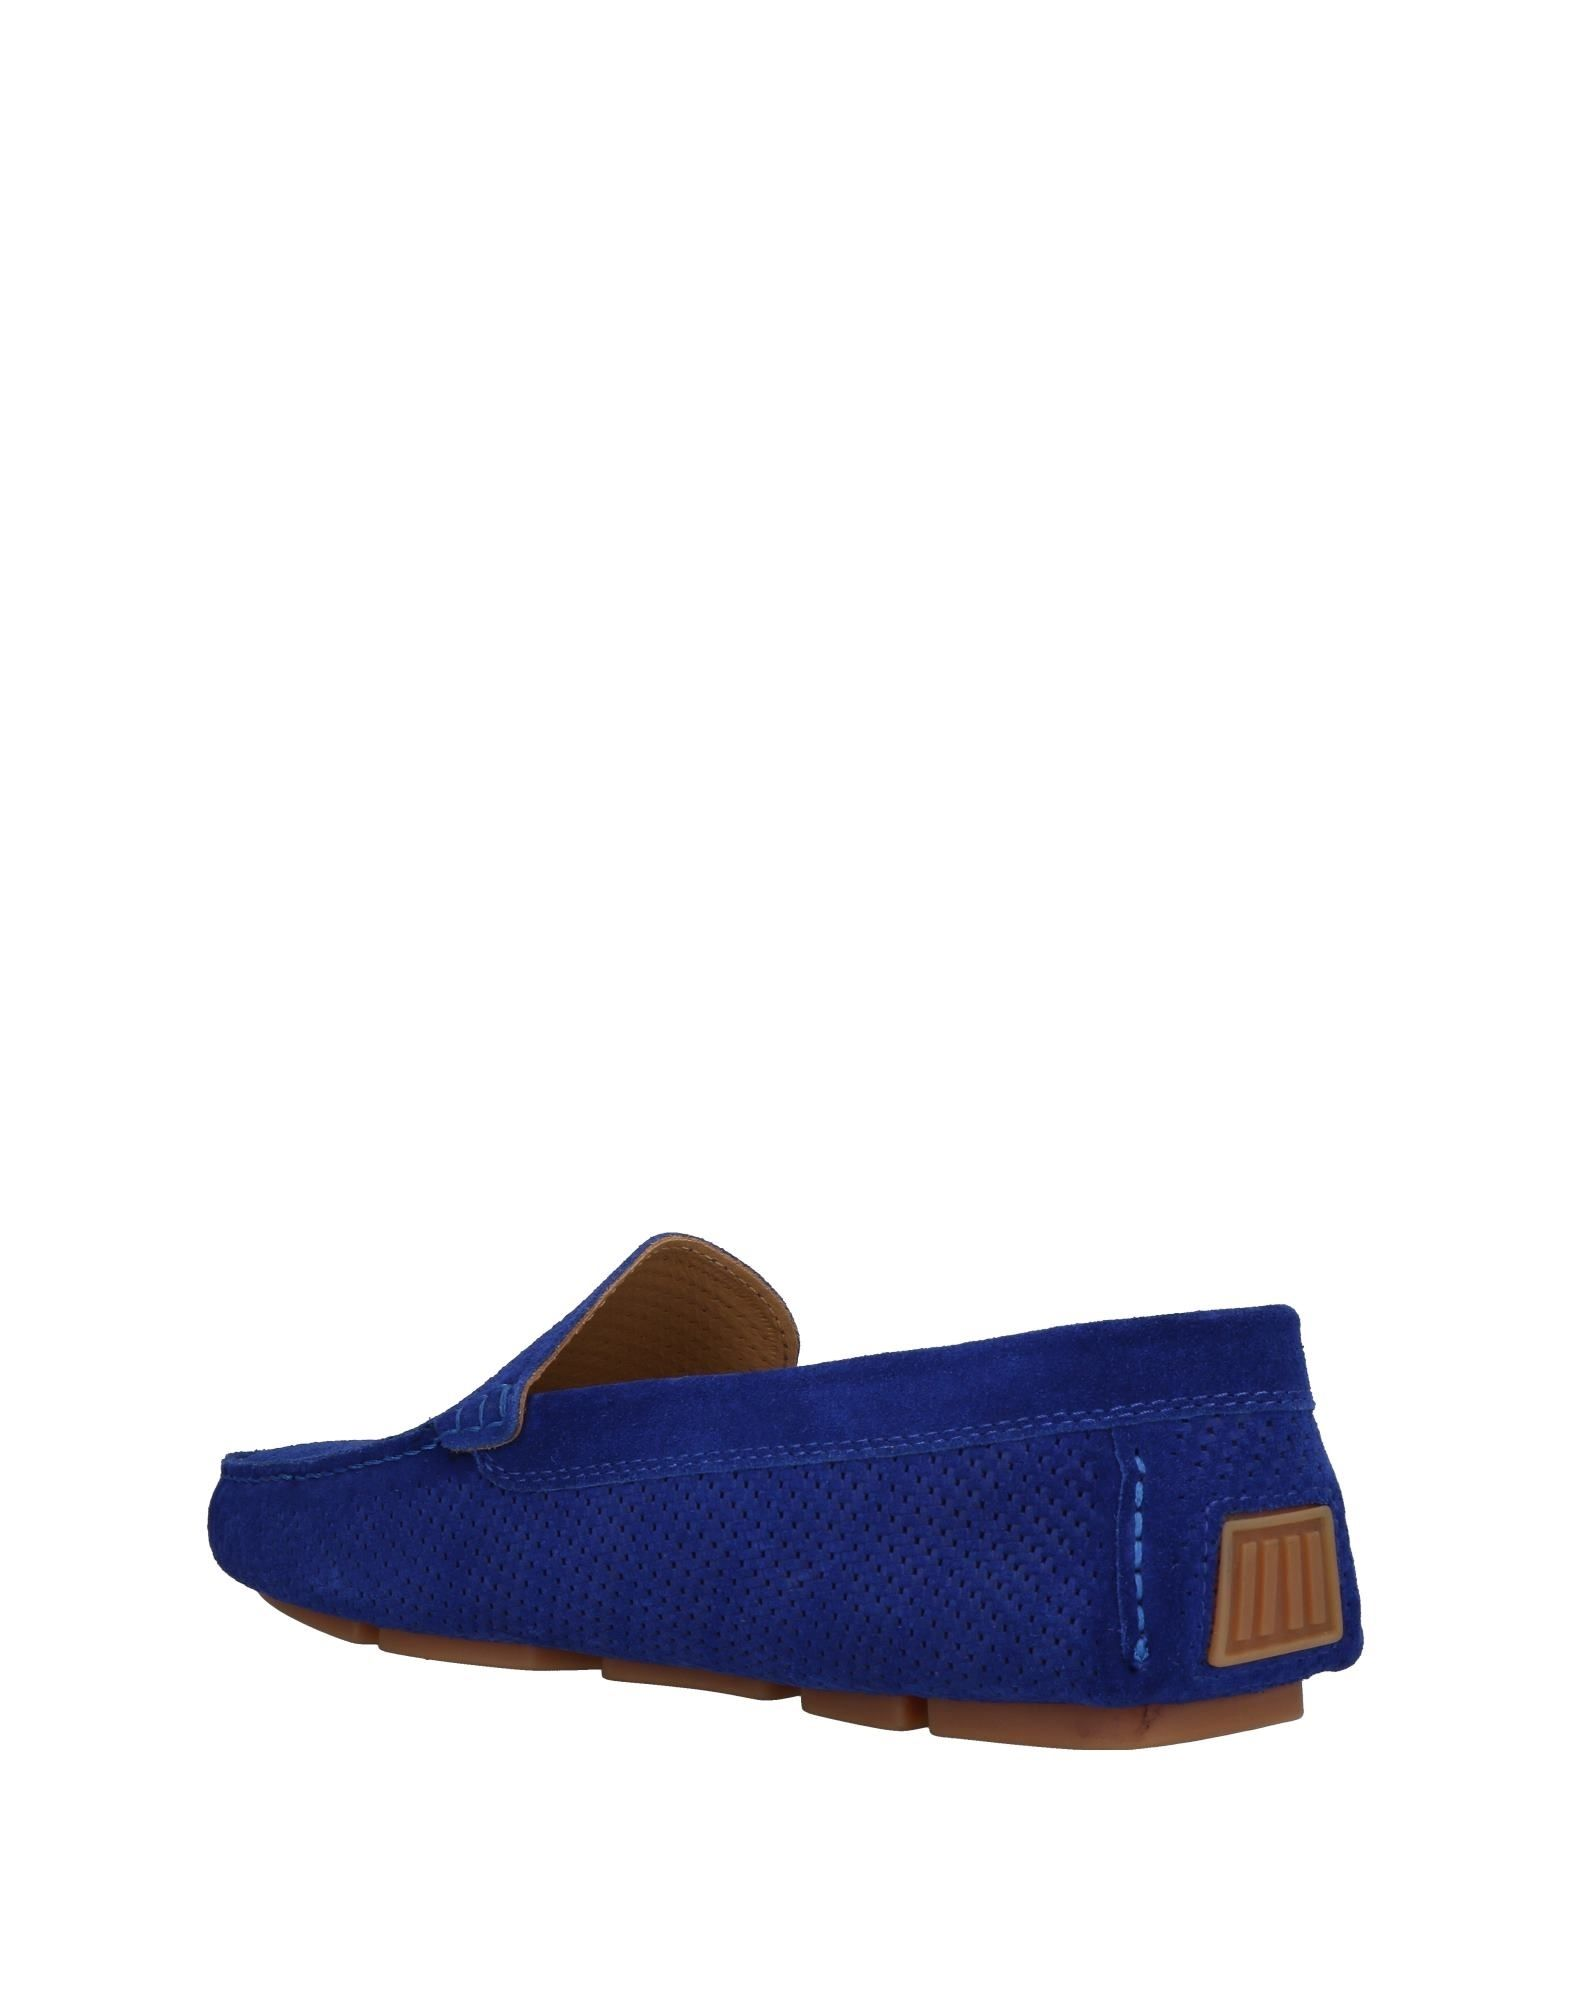 Tombolini Tombolini Tombolini Loafers - Men Tombolini Loafers online on  Canada - 11469266DV d56760